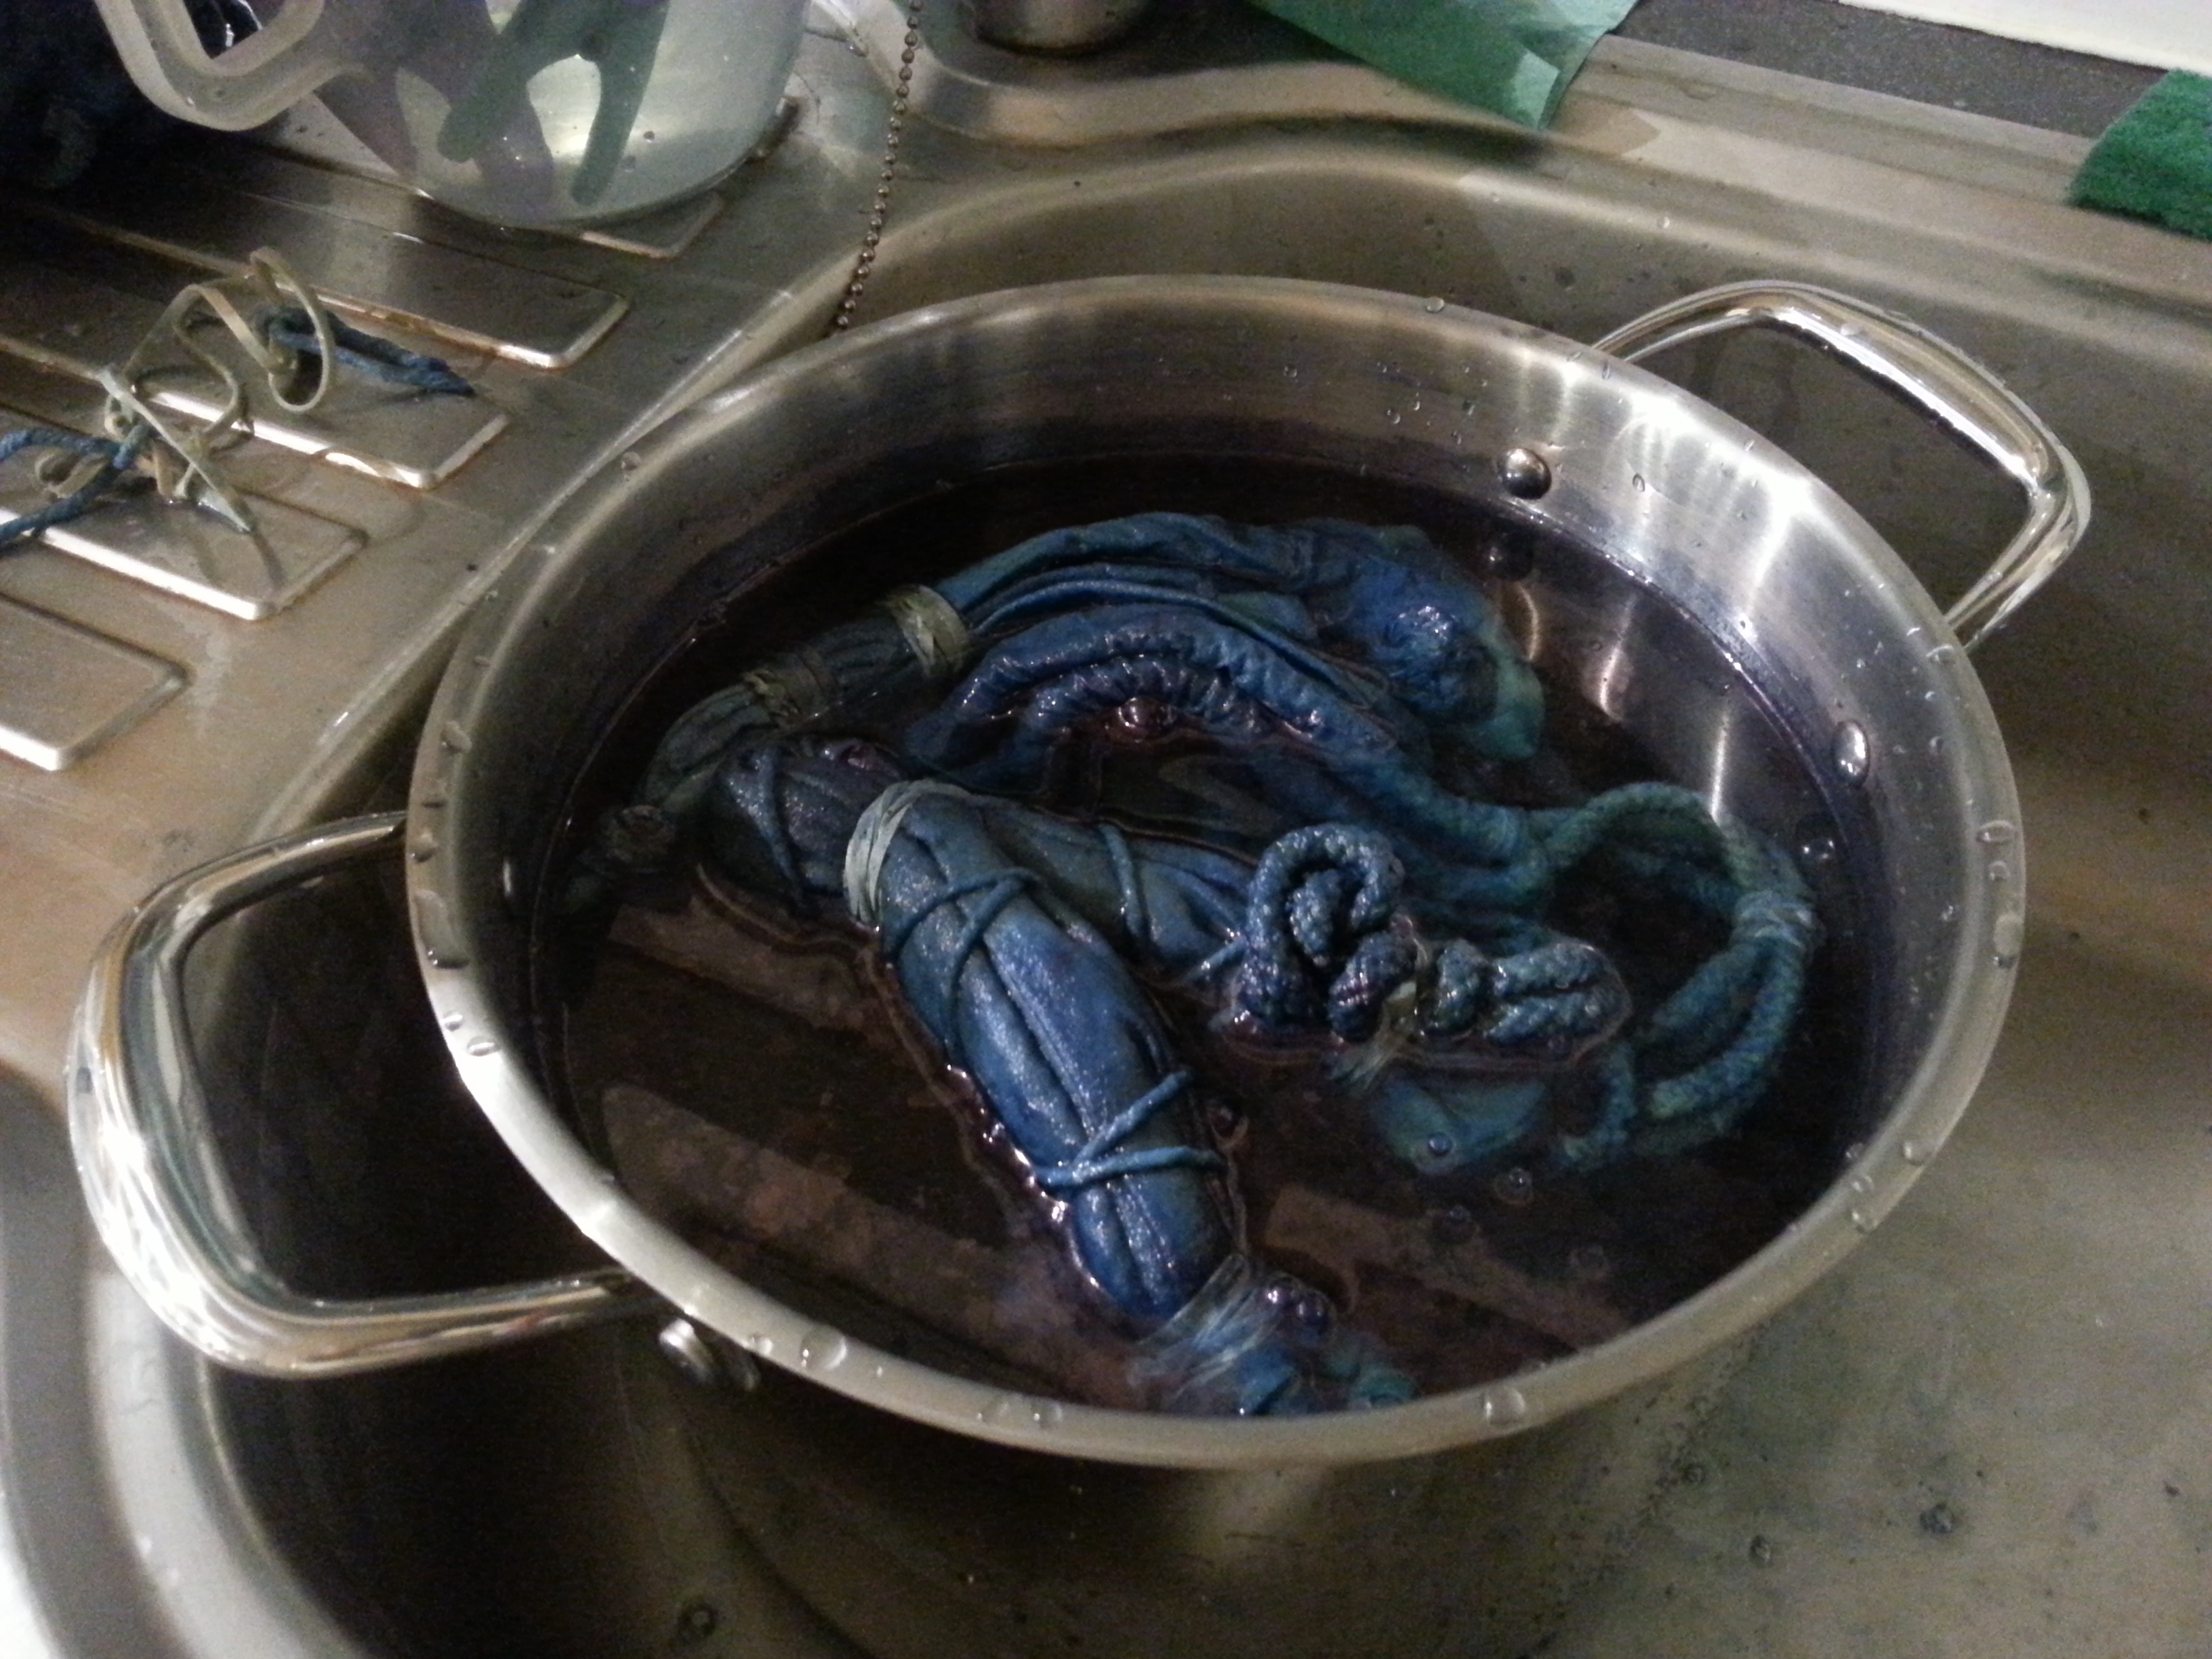 Indigo dyeing workshop with after-school clubs with Debbie Tomkies of Making Futures